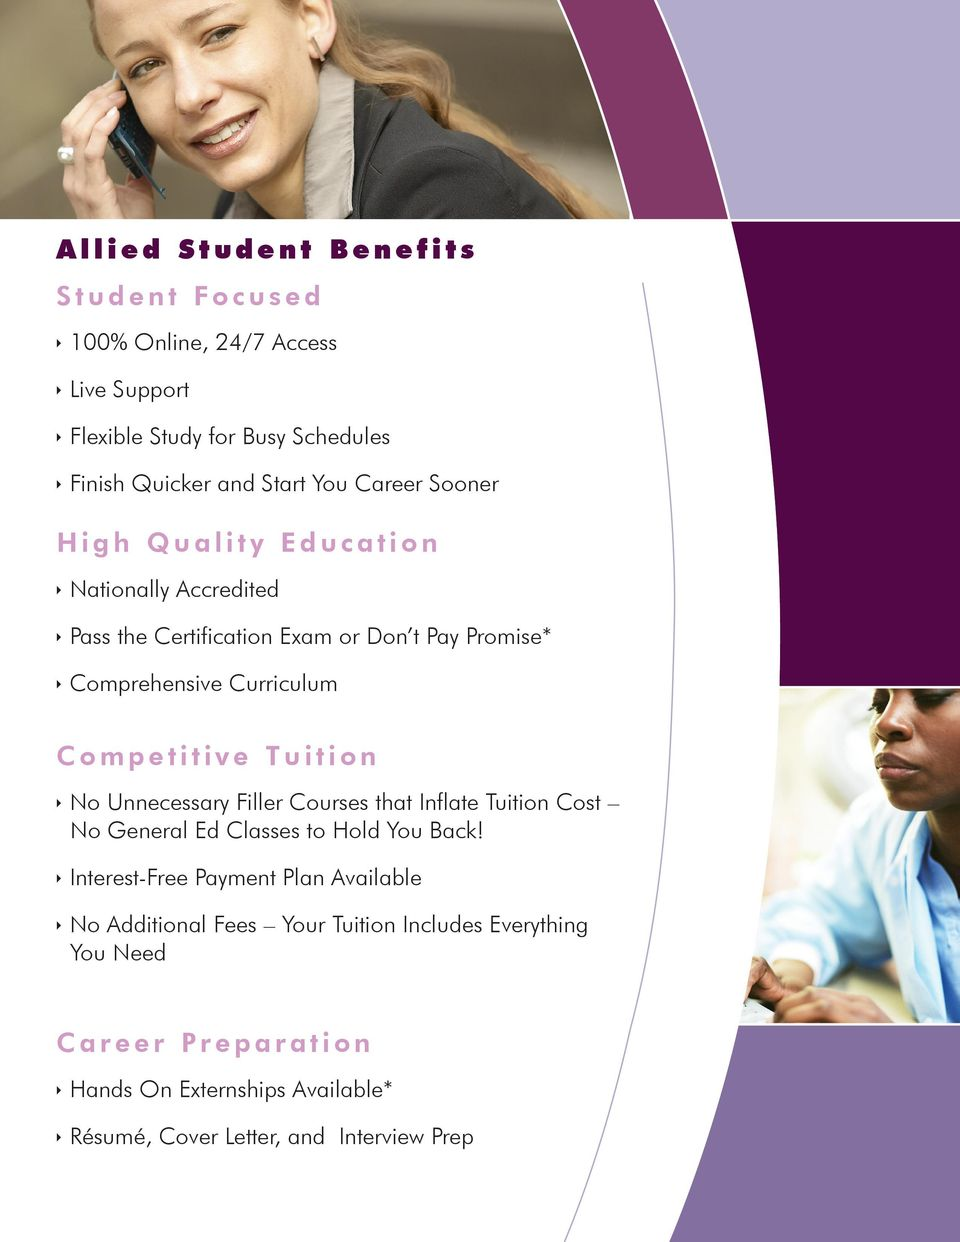 Competitive Tuition No Unnecessary Filler Courses that Inflate Tuition Cost No General Ed Classes to Hold You Back!